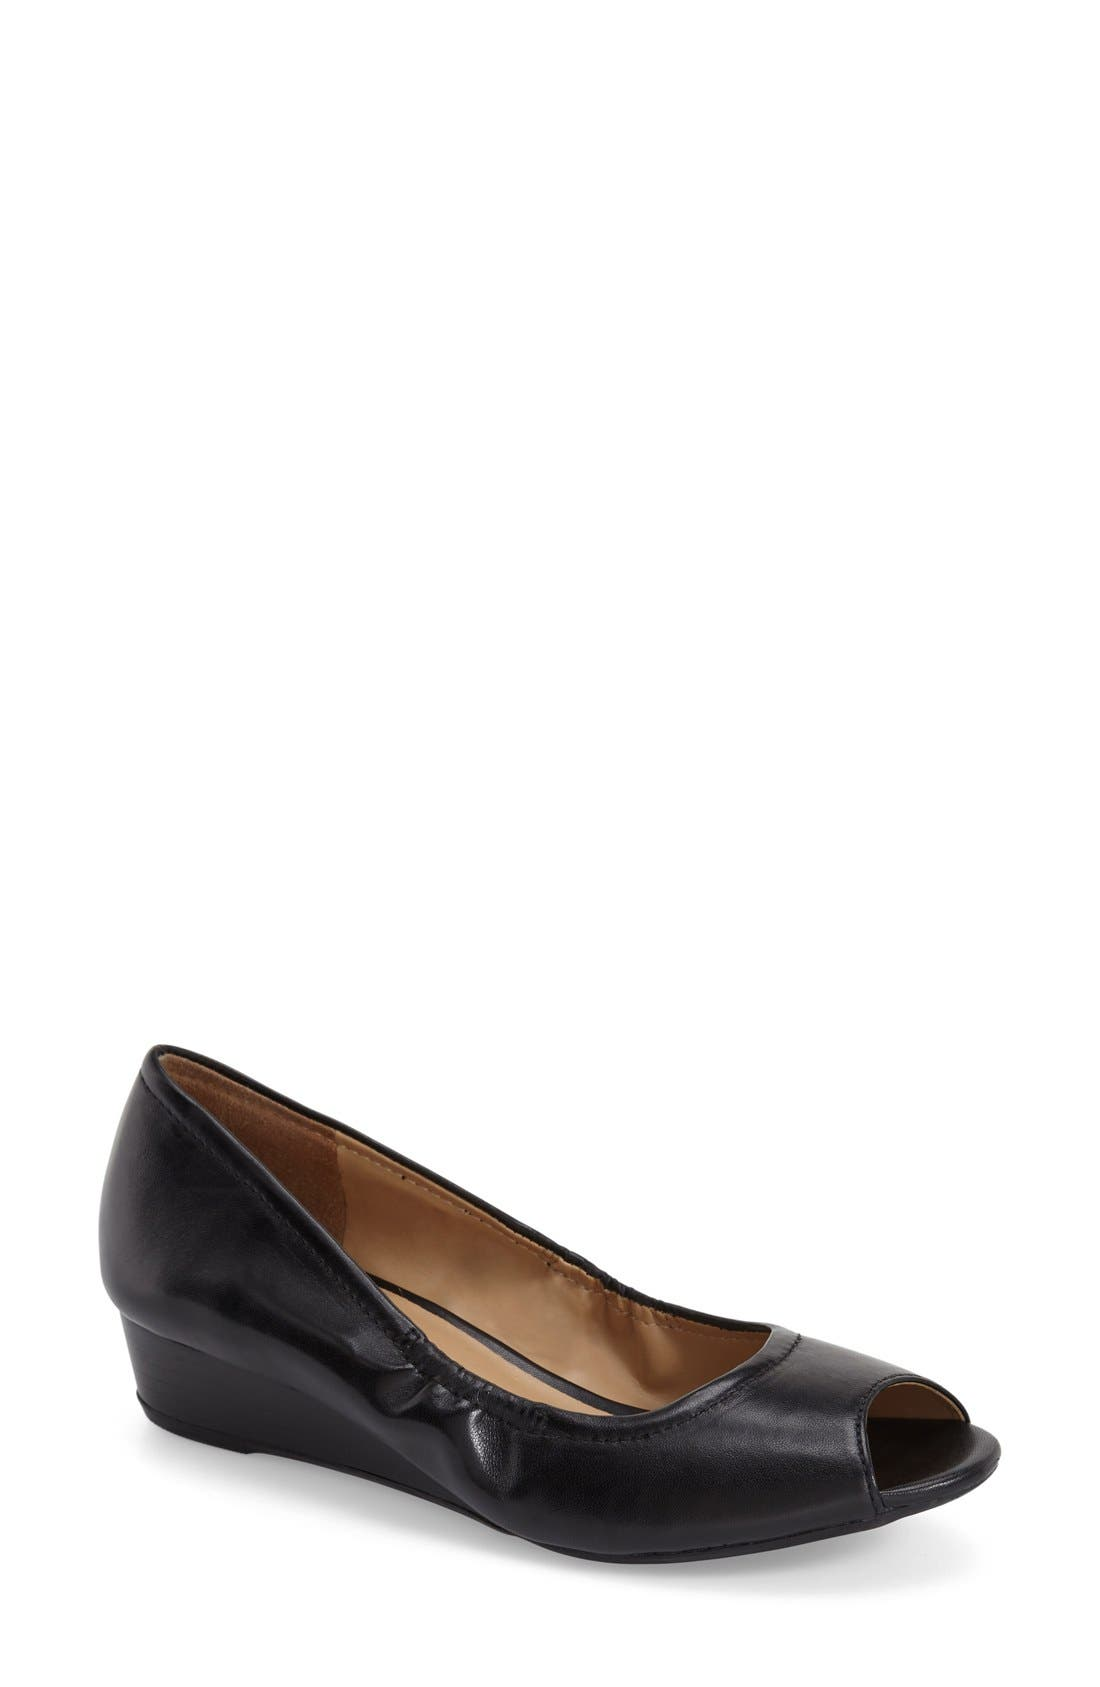 'Contrast' Peep Toe Wedge,                         Main,                         color, 001